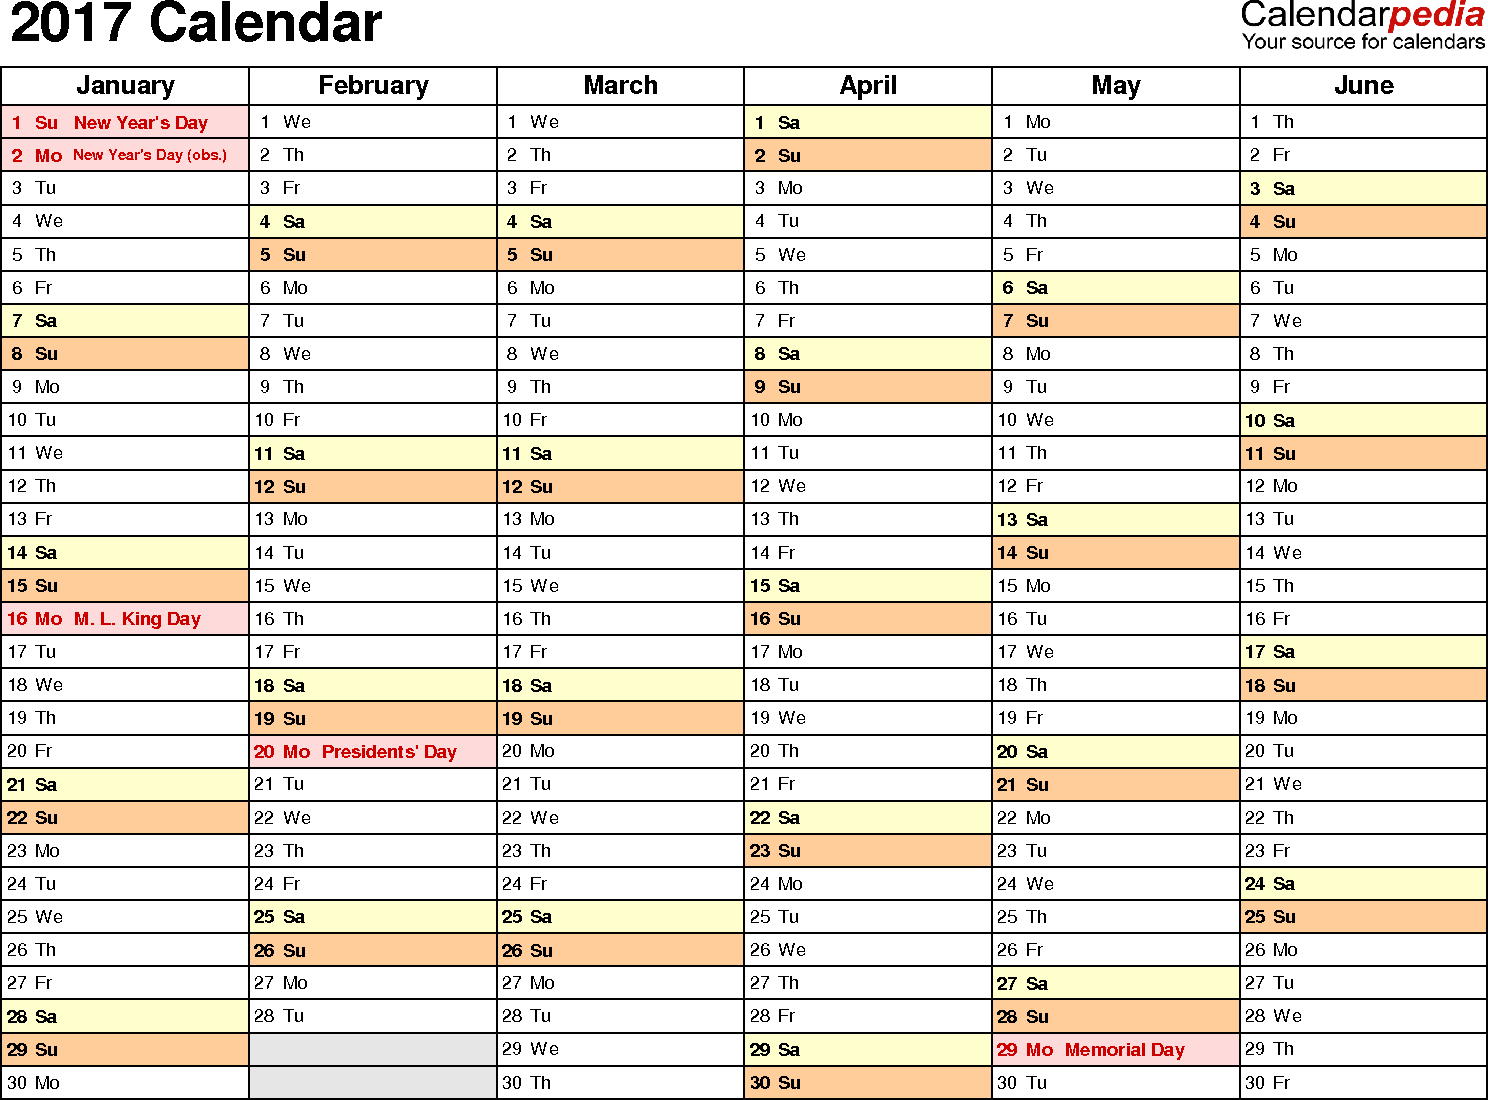 Ediblewildsus  Remarkable  Calendar  Download  Free Printable Excel Templates Xls With Handsome Template   Calendar For Excel Months Horizontally  Pages Landscape Orientation With Archaic Excel Pick From Drop Down Also Fte Calculation Excel In Addition Split Cells Excel  And How To Add Tick Mark In Excel As Well As Excel Lessons For Beginners Additionally Convert Doc To Excel From Calendarpediacom With Ediblewildsus  Handsome  Calendar  Download  Free Printable Excel Templates Xls With Archaic Template   Calendar For Excel Months Horizontally  Pages Landscape Orientation And Remarkable Excel Pick From Drop Down Also Fte Calculation Excel In Addition Split Cells Excel  From Calendarpediacom